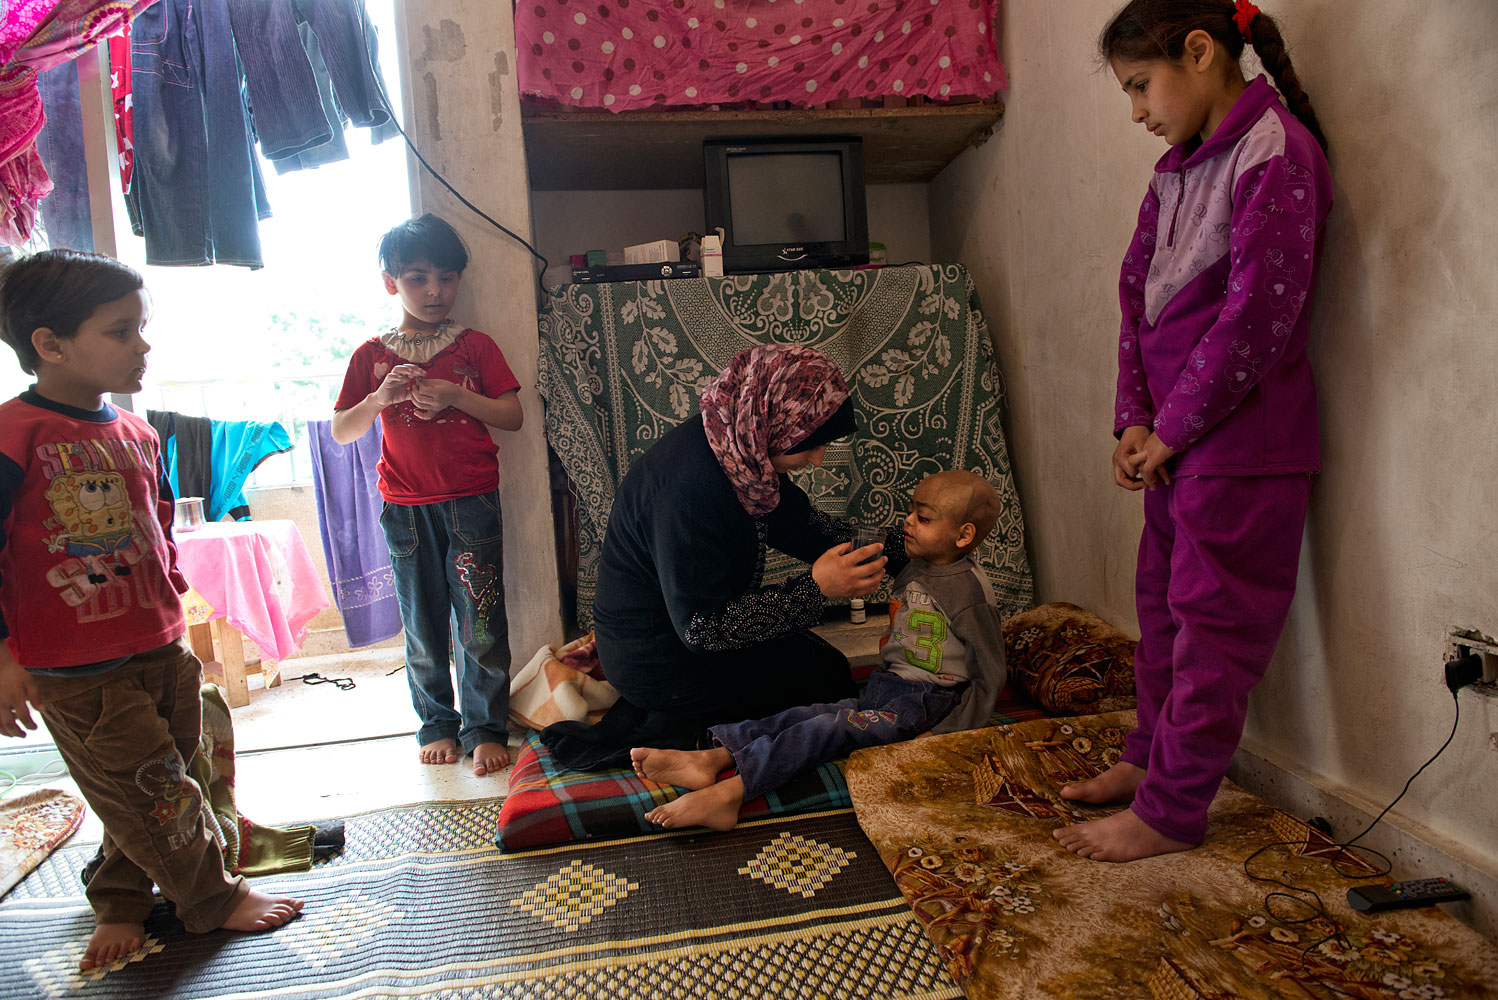 "Feryal, 29, gives water to Zacharia, her four-year-old son, in the apartment they live in in Halat. He is dying of cancer. In Syria, the trip to hospital became too dangerous. ""I was afraid,"" said Feryal. By the time they reached Lebanon, the cancer had spread to his brain, she says, adding: ""I failed him."""